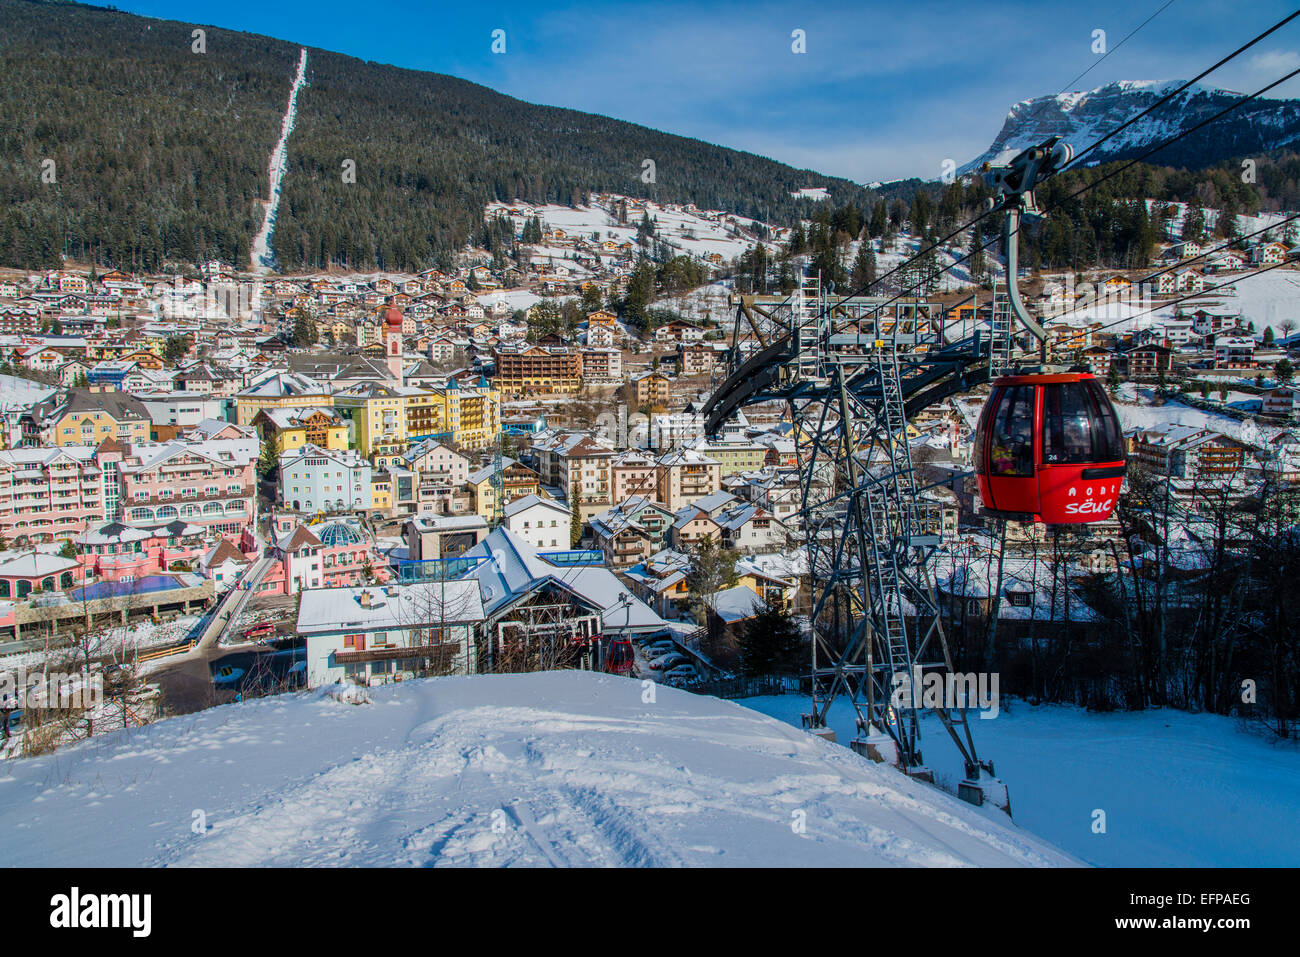 Winter top view of Ortisei St Ulrich with Seiser Alm gondola lift, Dolomites, Alto Adige, South Tyrol, Italy - Stock Image